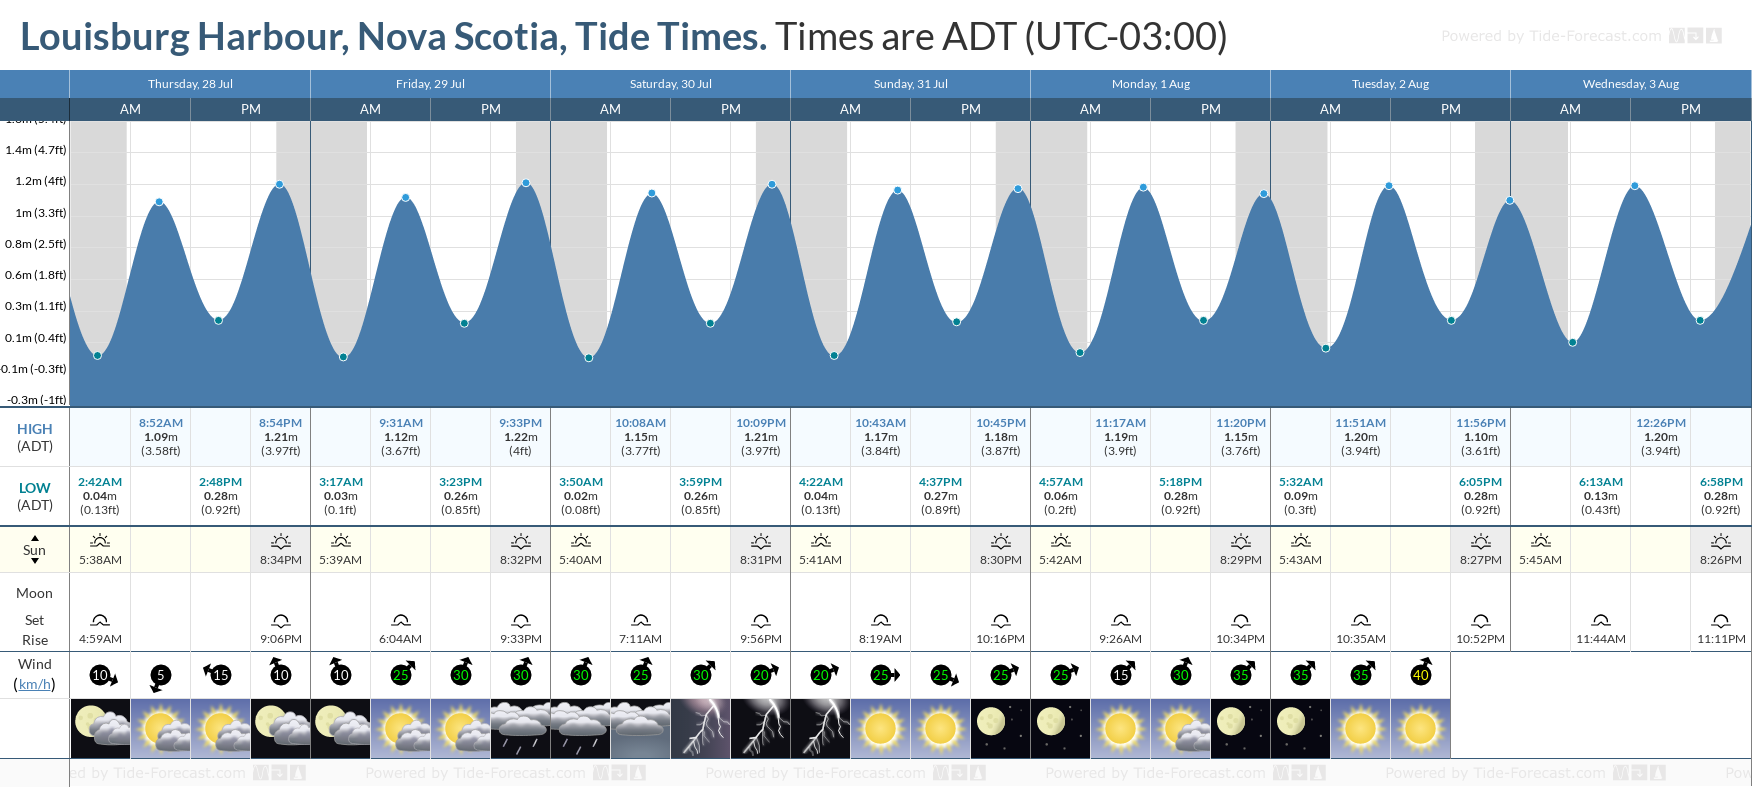 Louisburg Harbour, Nova Scotia Tide Chart including high and low tide tide times for the next 7 days